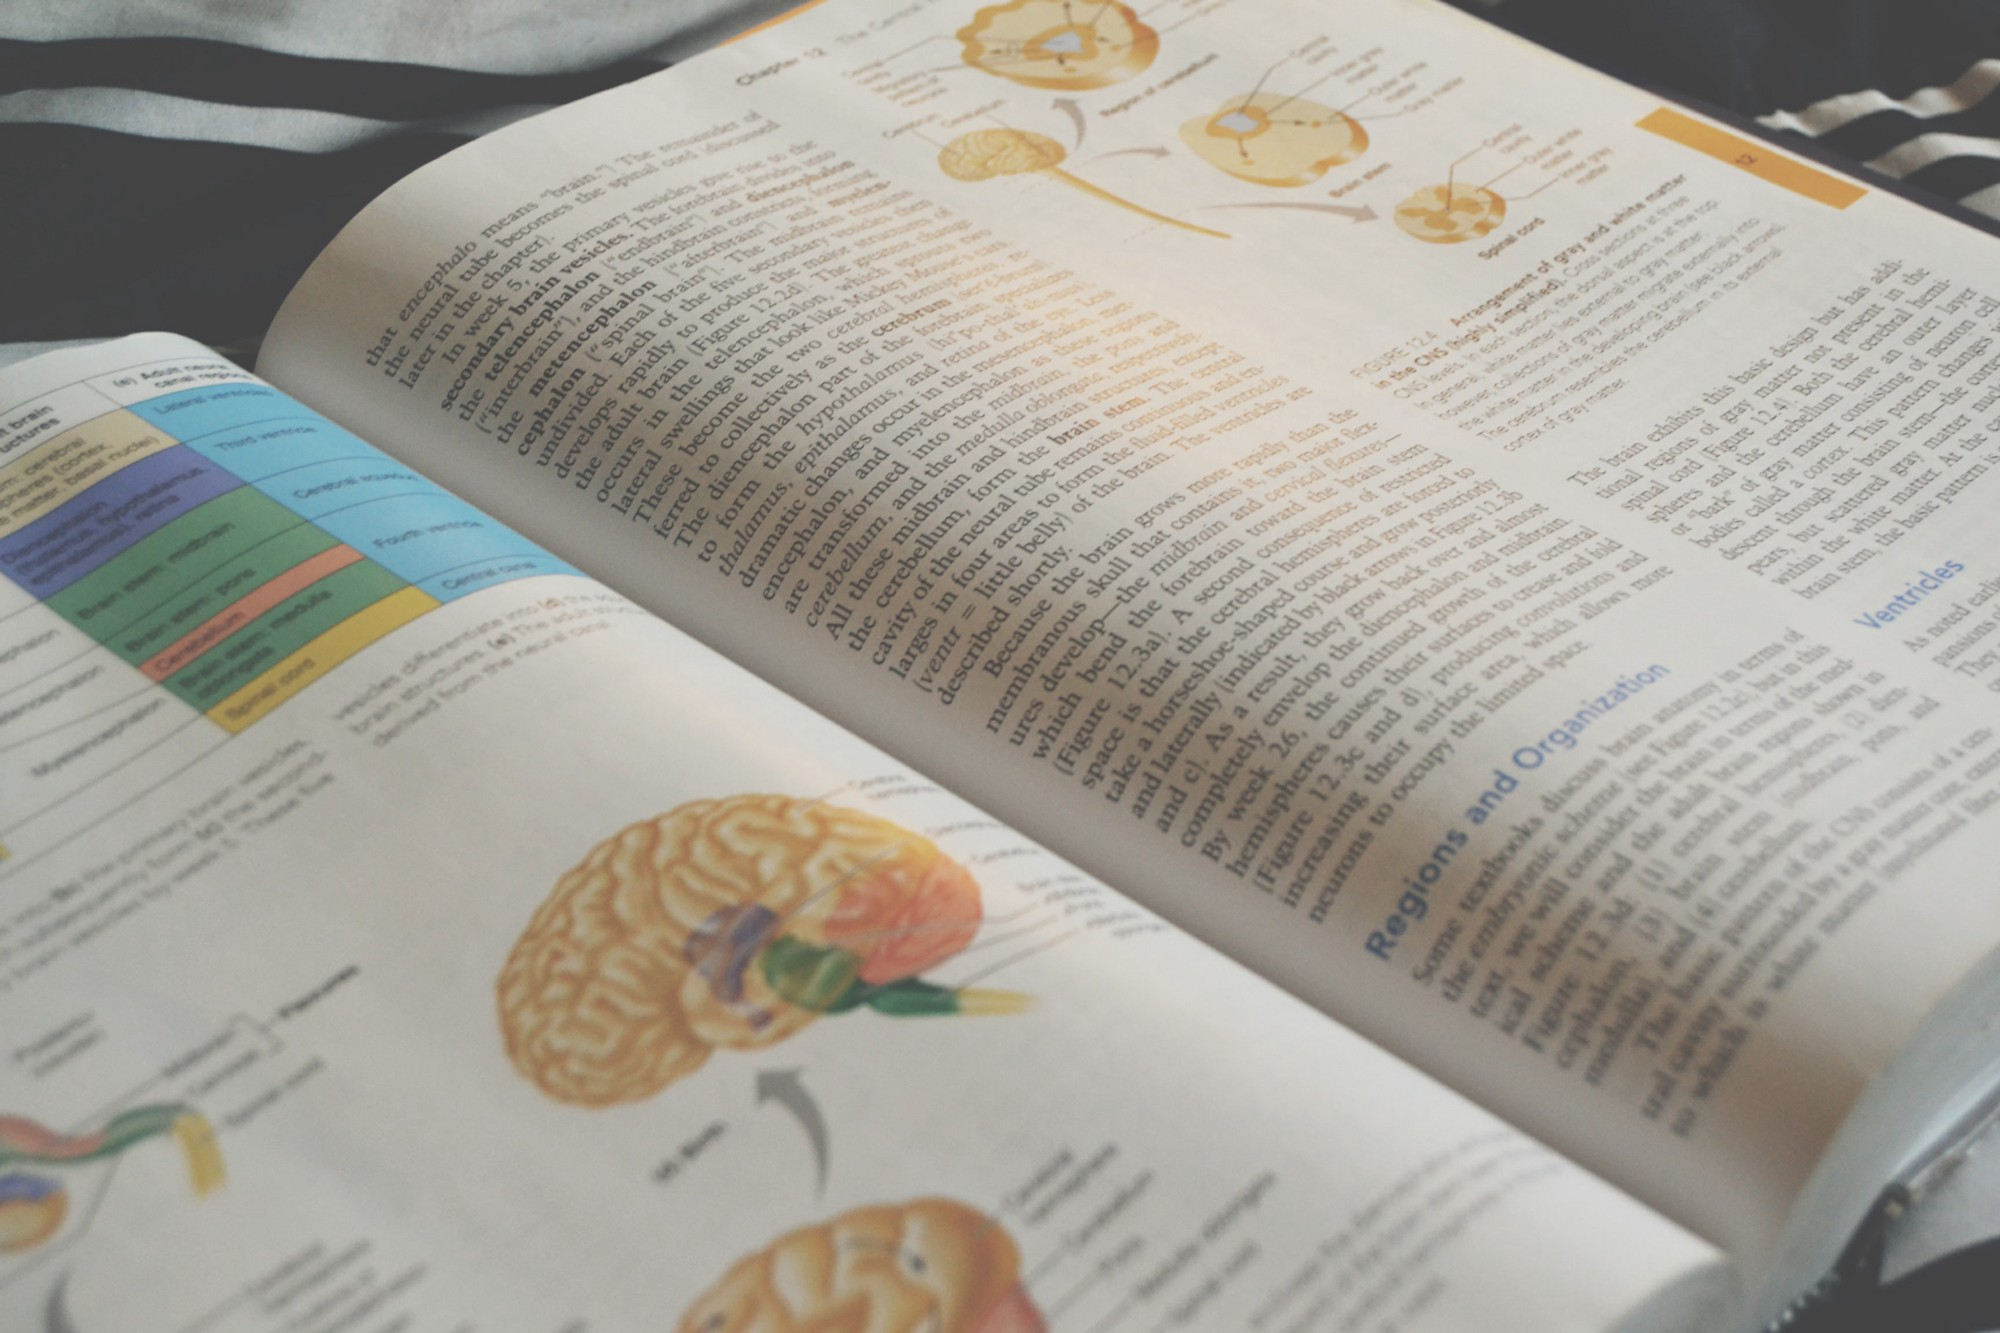 How To Highlight Your Biology Textbook – The Higher Education Revolution